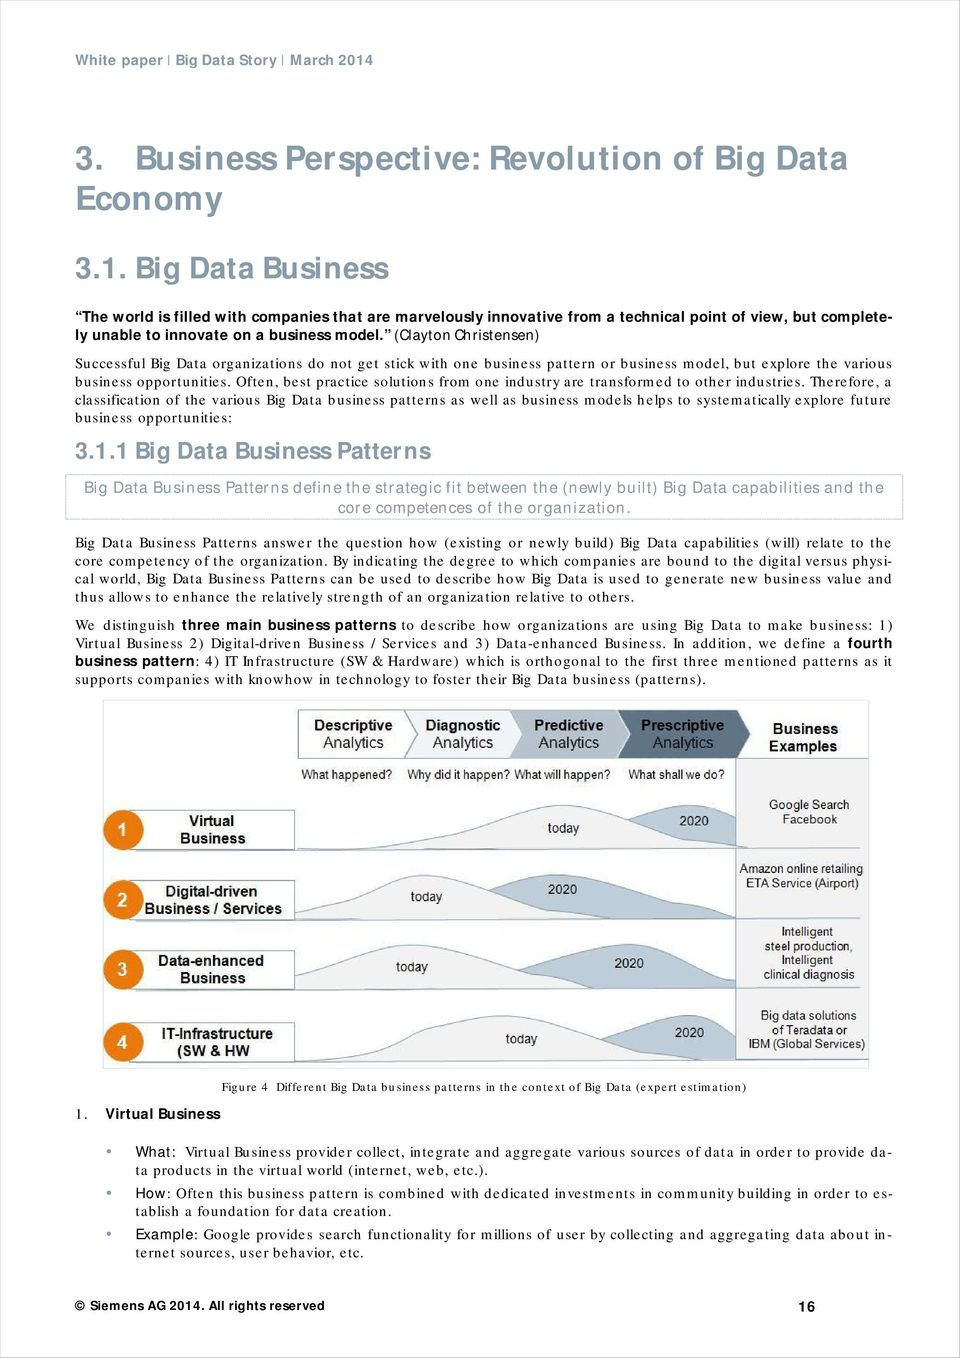 (Clayton Christensen) Successful Big Data organizations do not get stick with one business pattern or business model, but explore the various business opportunities.